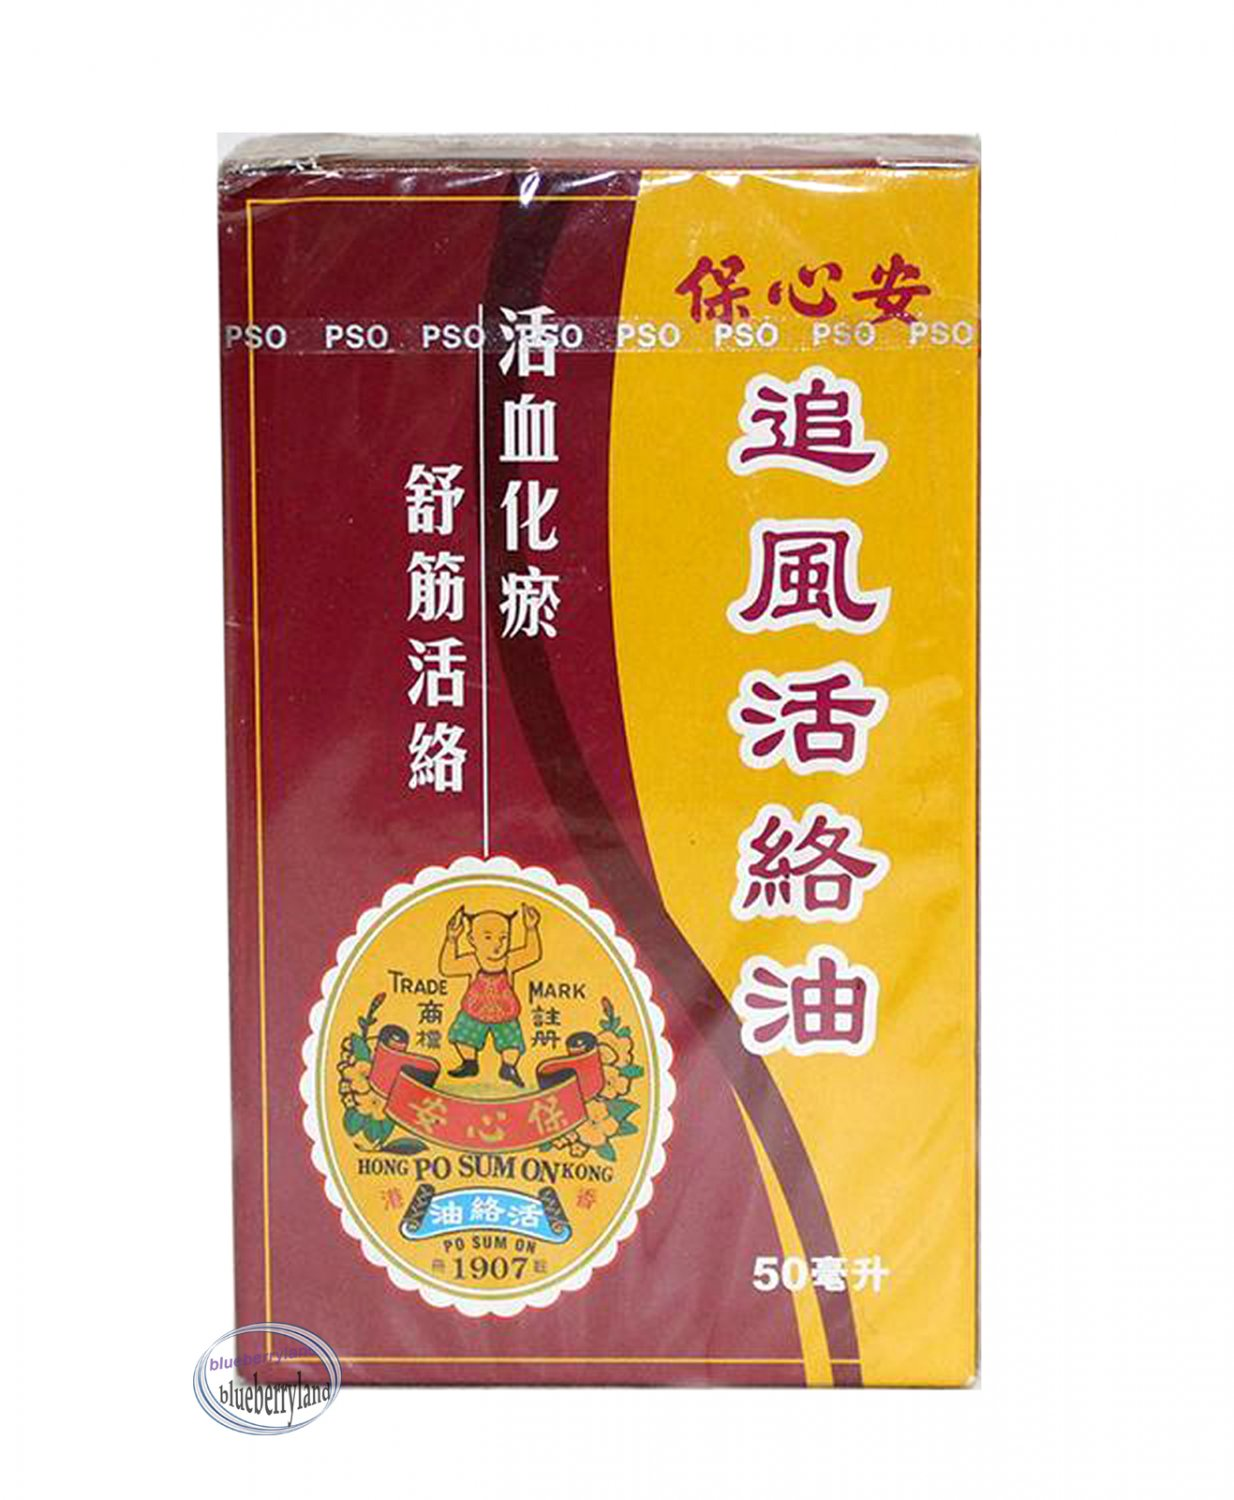 Po Sum On Zhui Feng Huo Luo Oil 50ml Medicated Pain Cure Oil ��� 追風活絡油